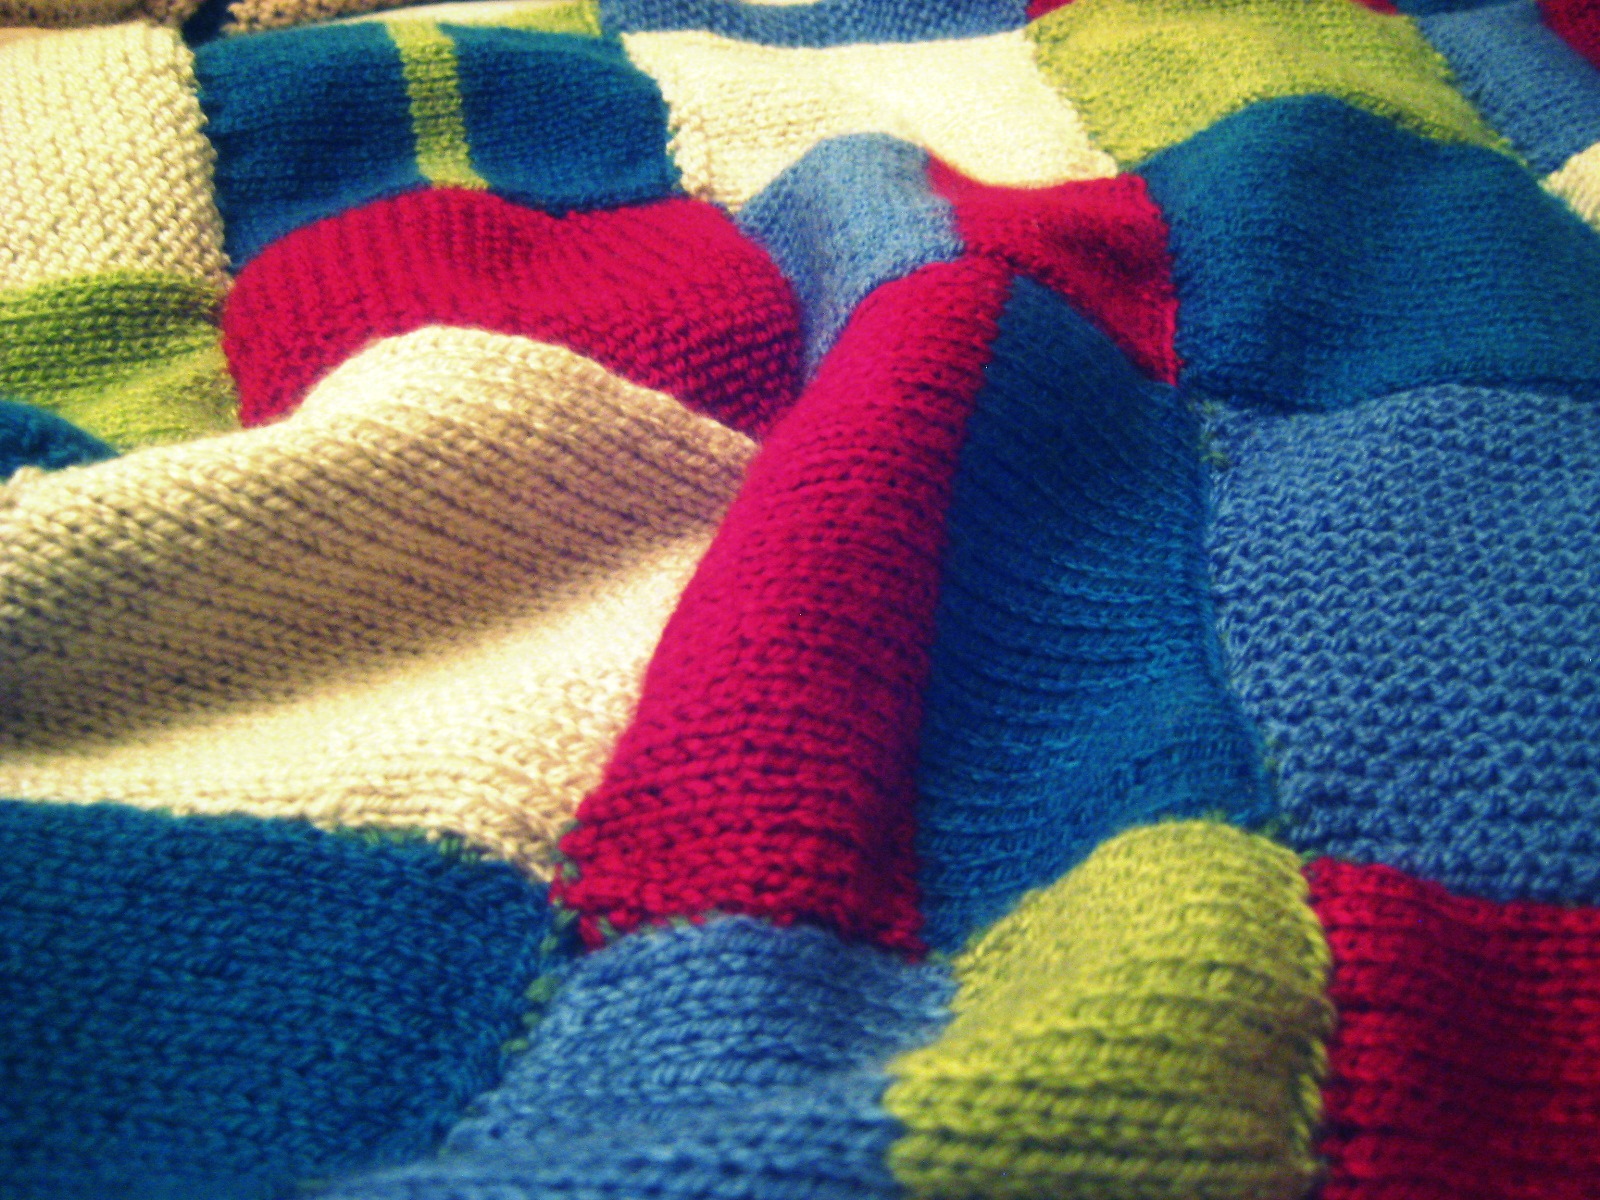 Knitting Pattern Patchwork Afghan : Mere frivolity: Ive been knitting